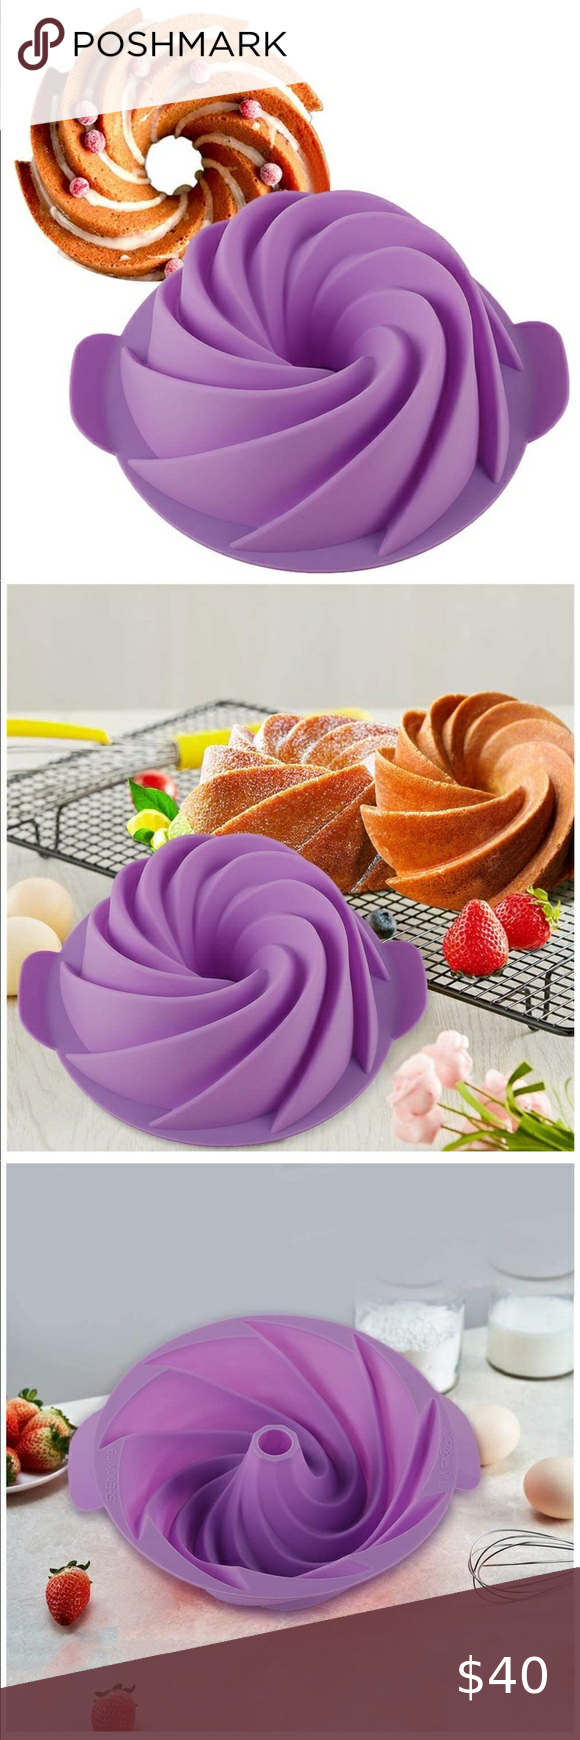 New Silicone Bundt Cake Pan In 2020 Cake Molds Silicone Cake Mold Bundt Cake Pan